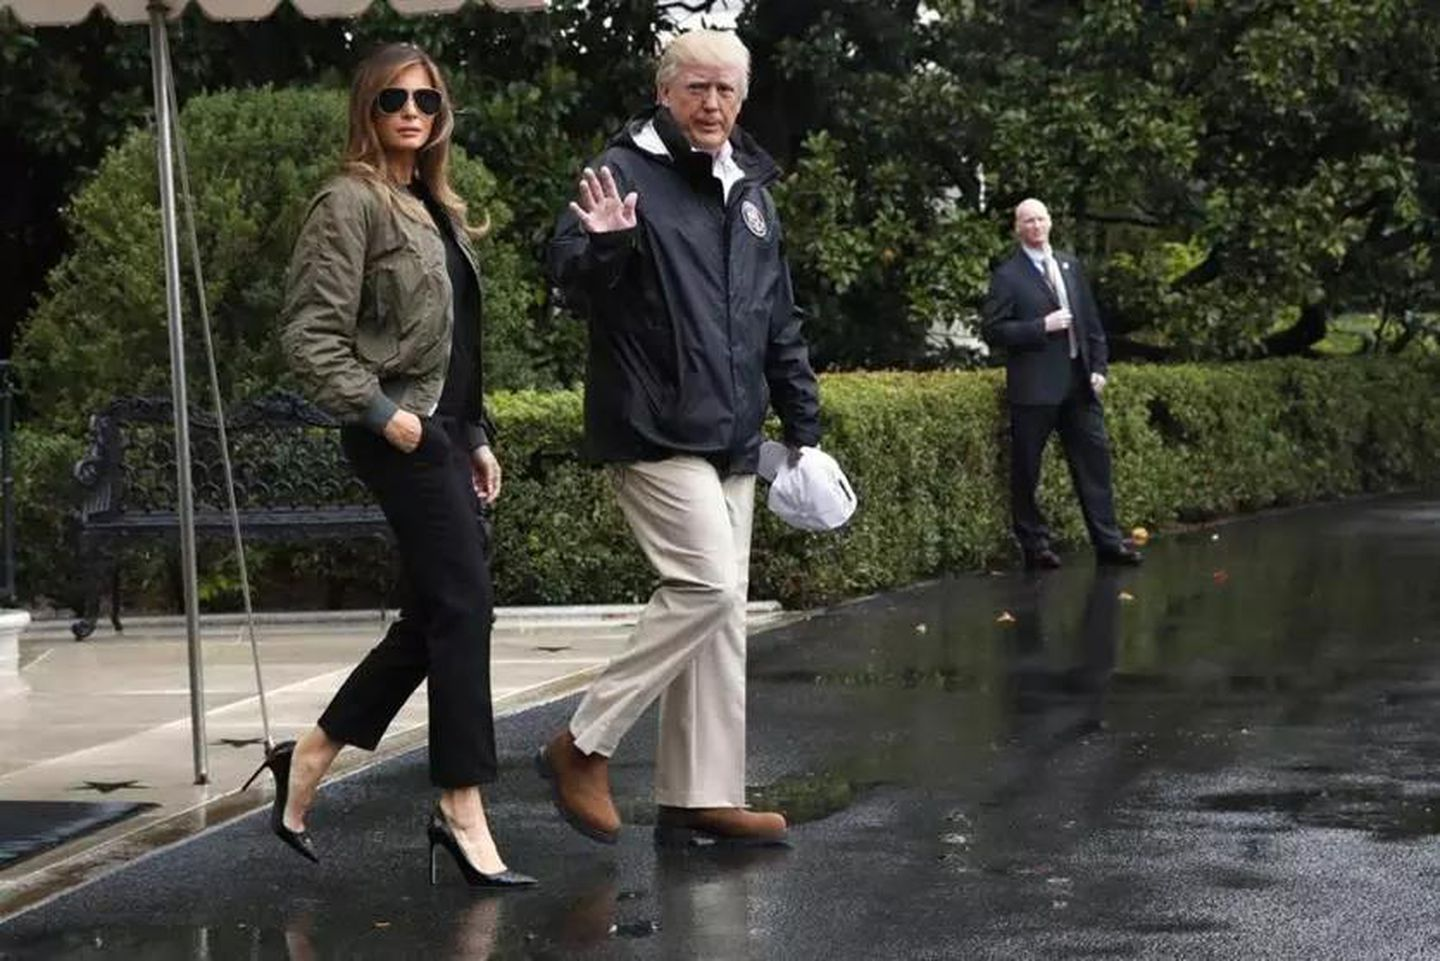 2e0e26bea3bf President Trump and first lady Melania Trump walked from the White House to  the South Lawn